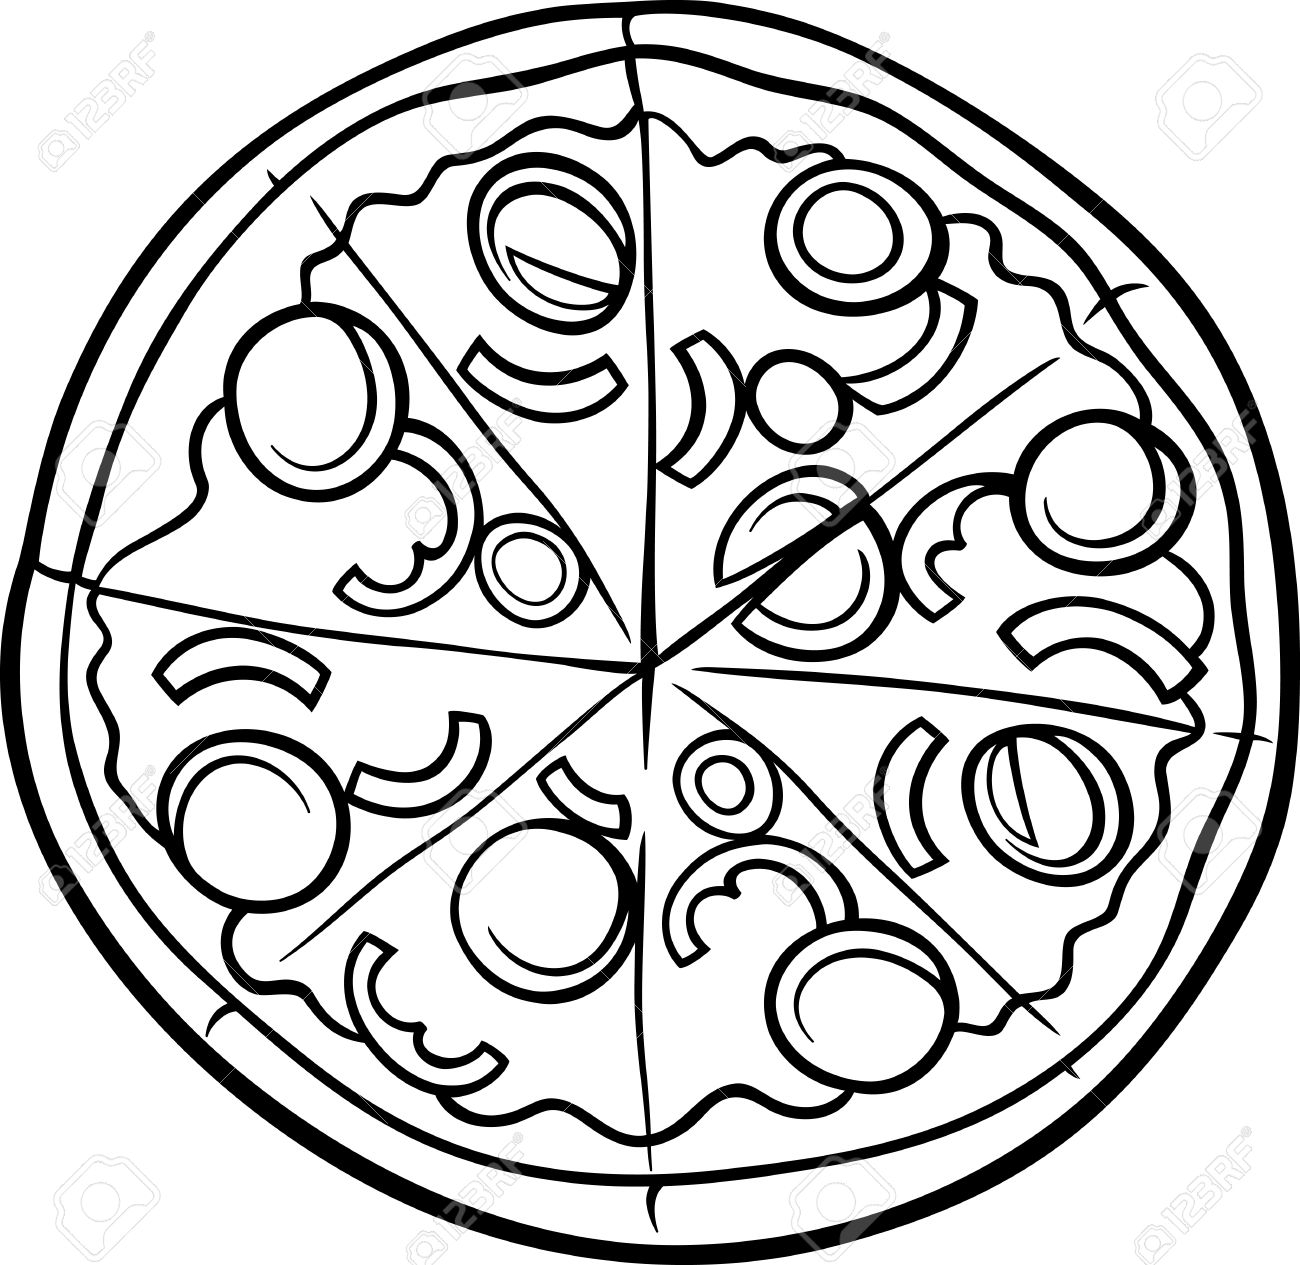 Pie Black And White Pizza Pie Clipart Black And White